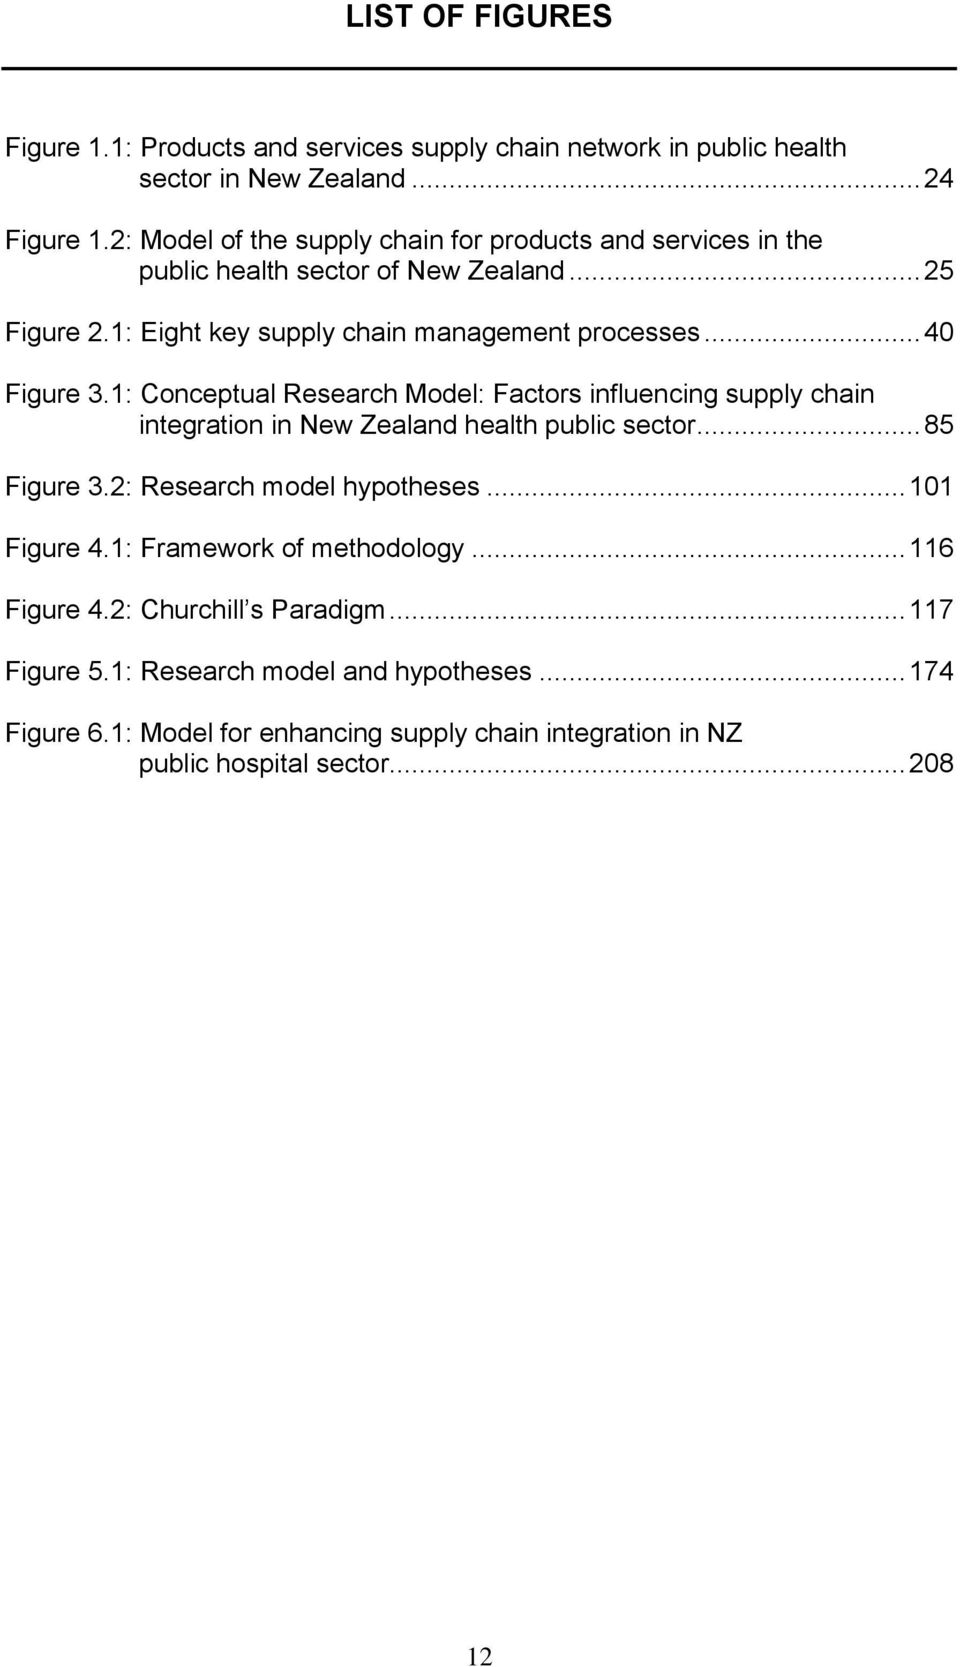 1: Conceptual Research Model: Factors influencing supply chain integration in New Zealand health public sector... 85 Figure 3.2: Research model hypotheses... 101 Figure 4.